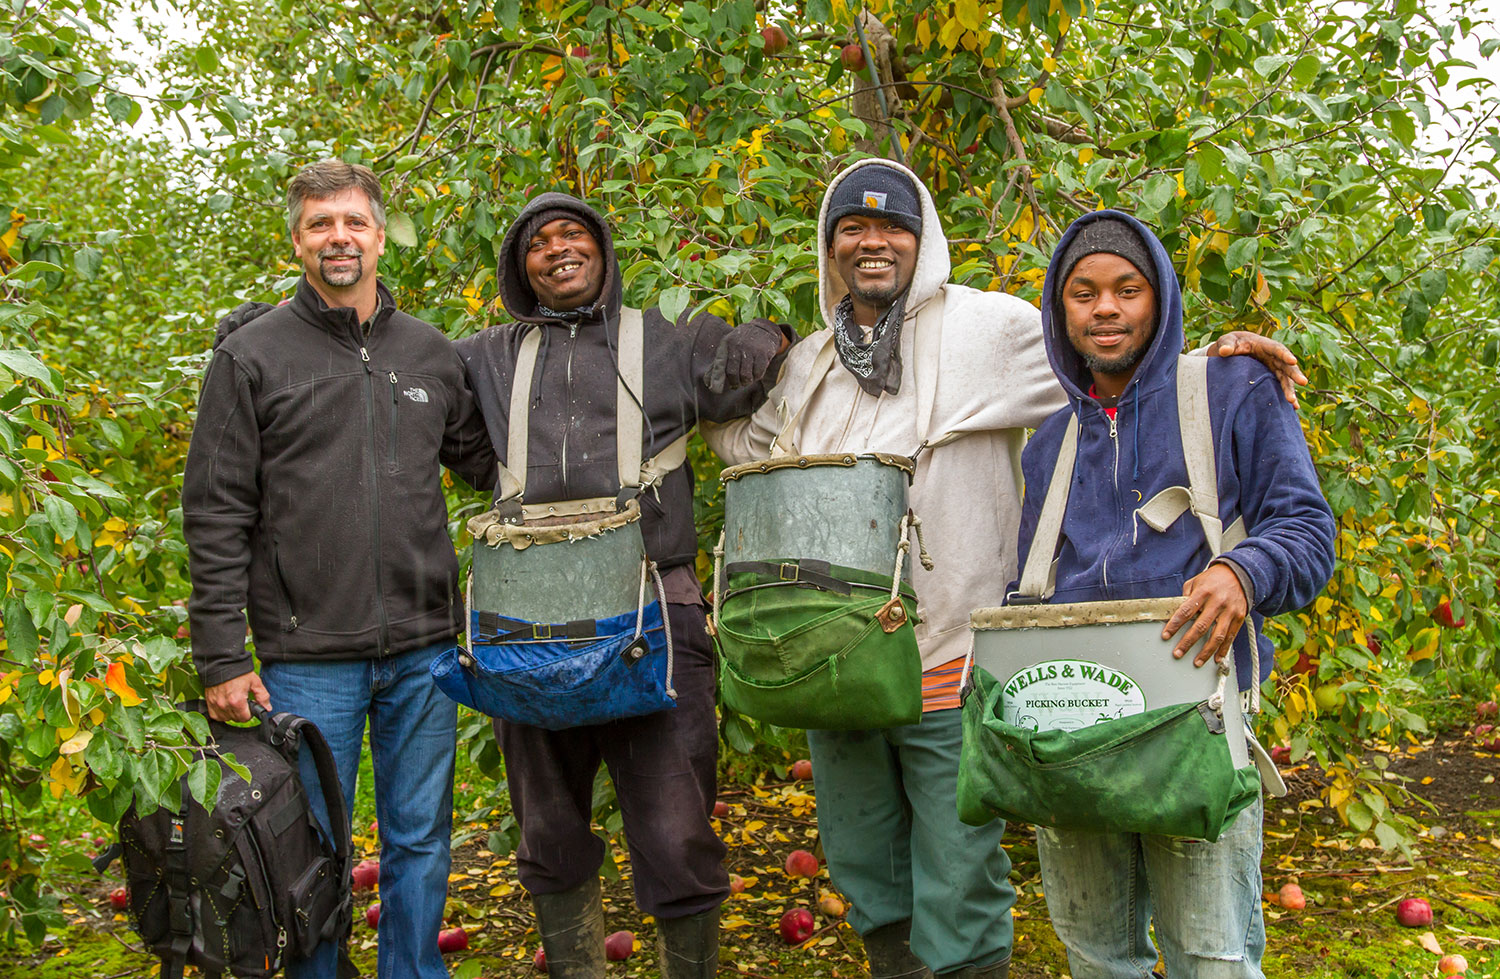 Orchard workers